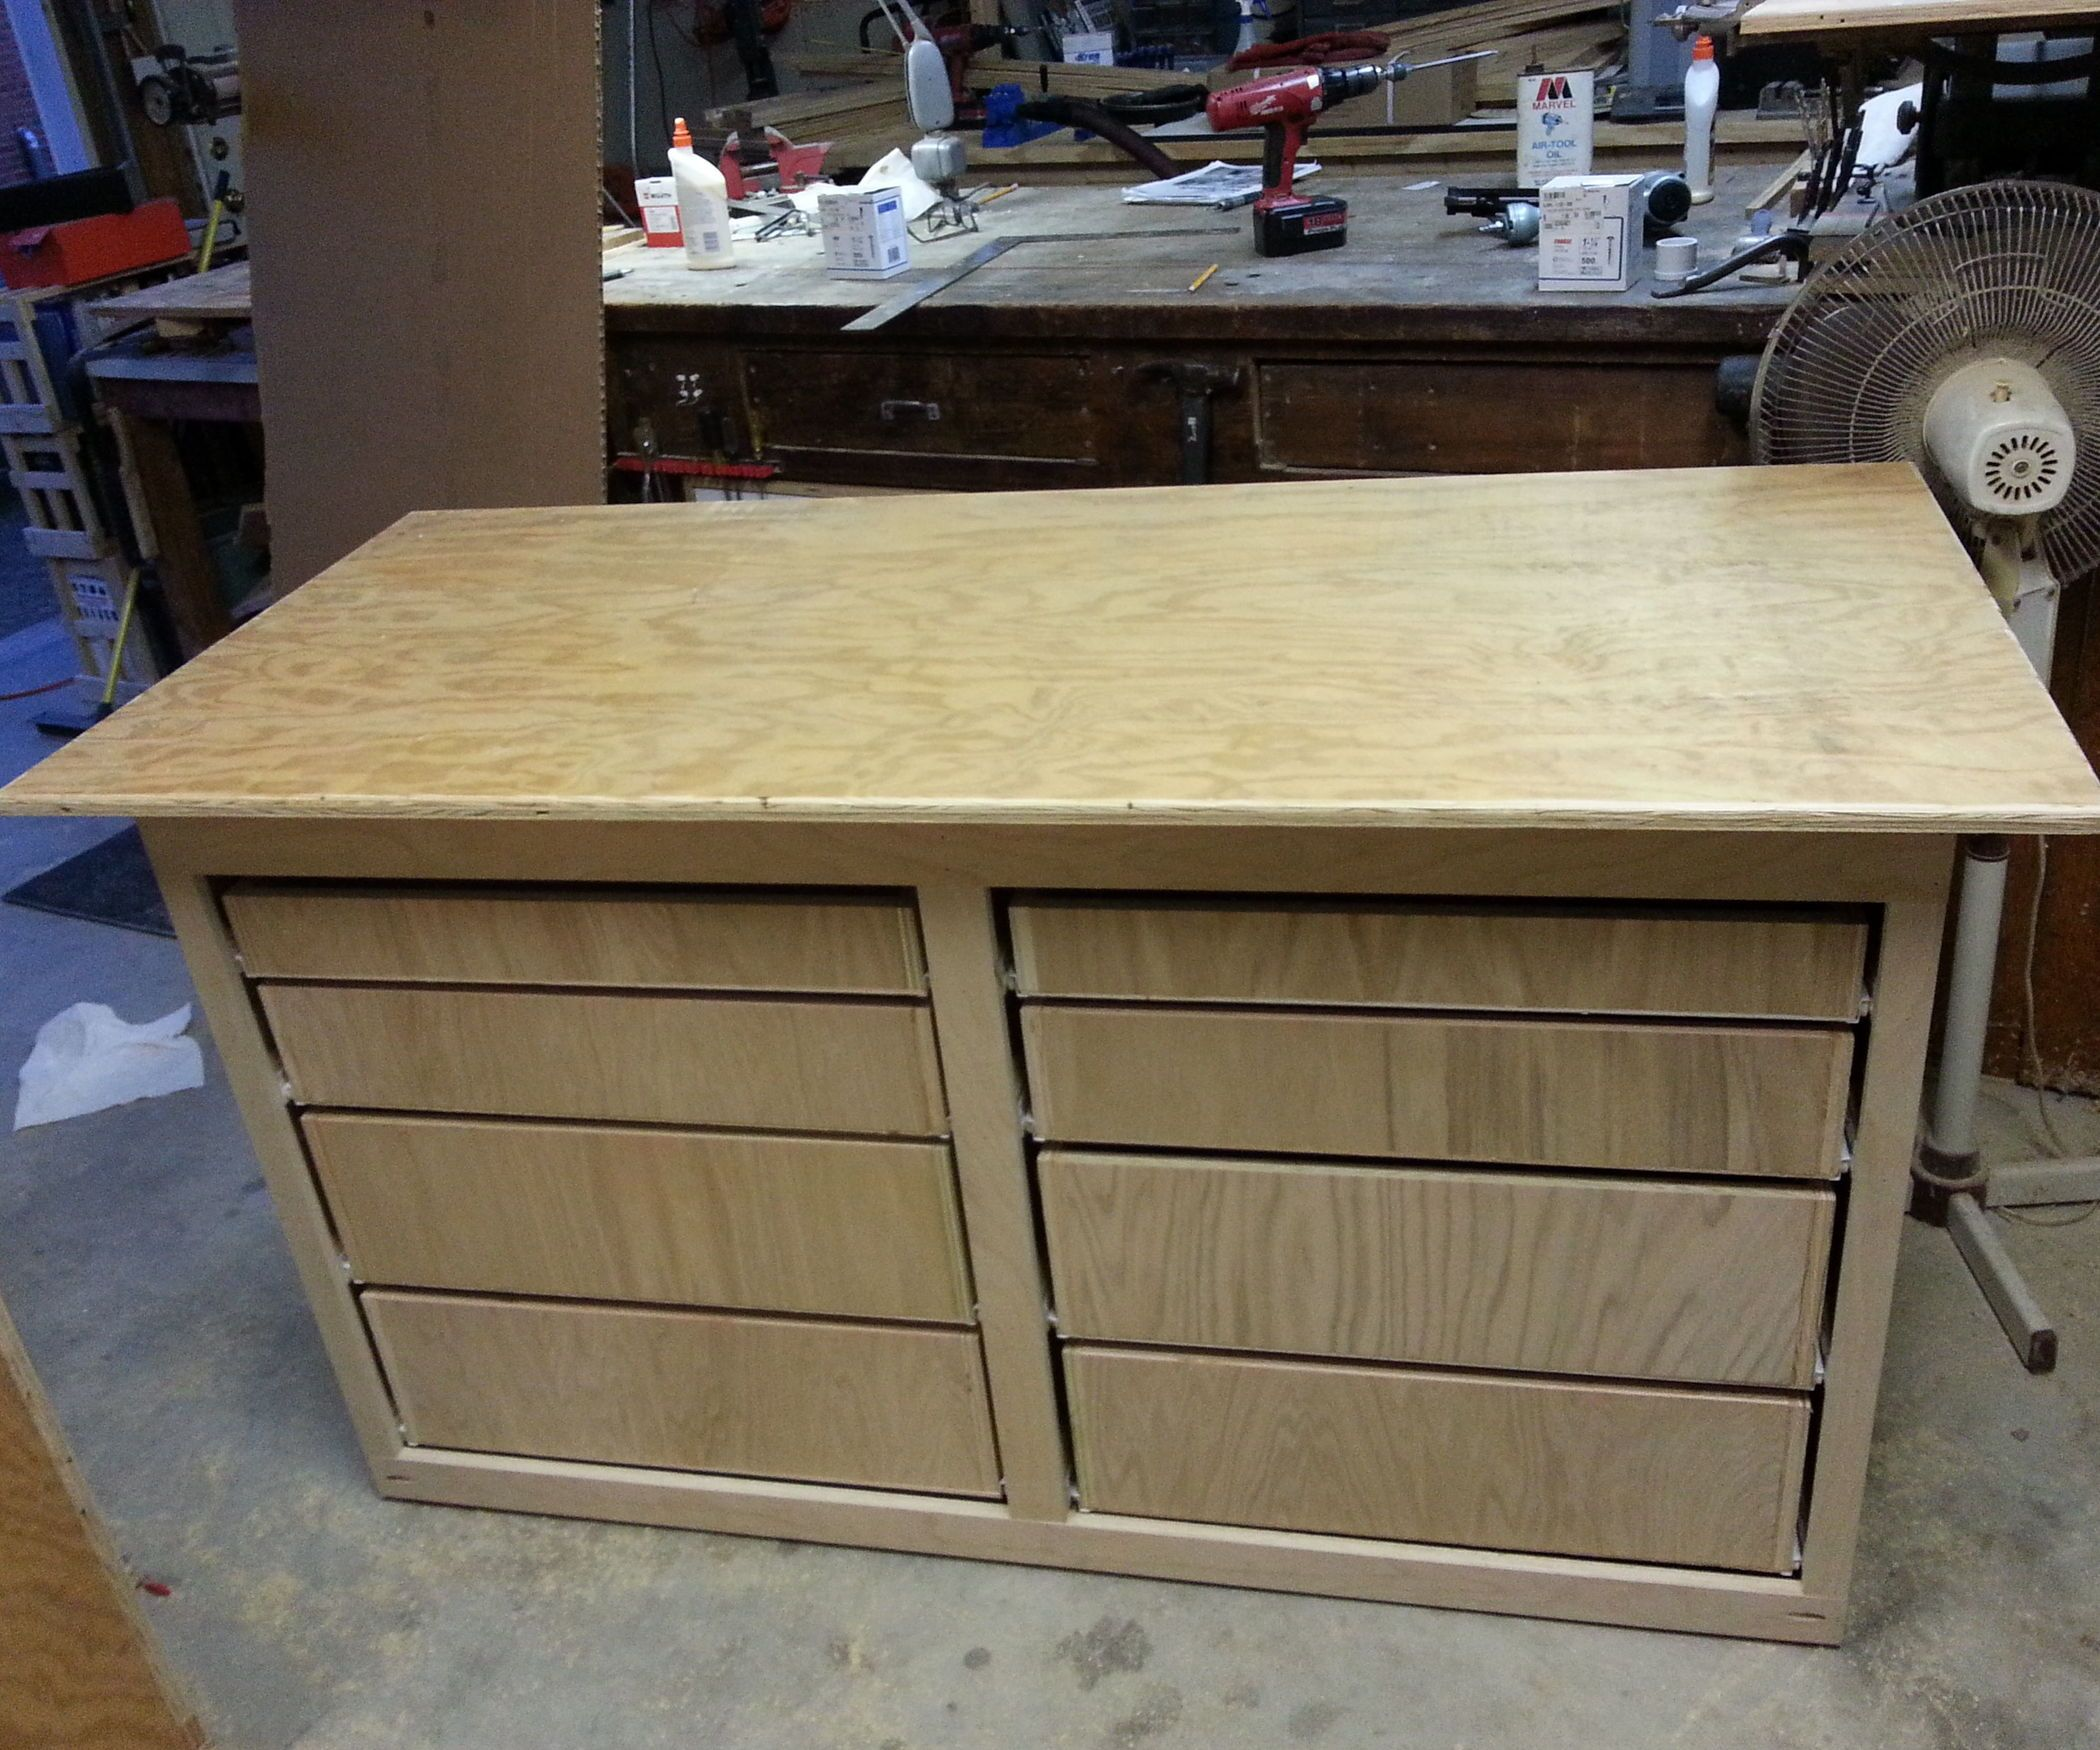 Workbench With Drawers in 5 Days | Shop cabinets ...